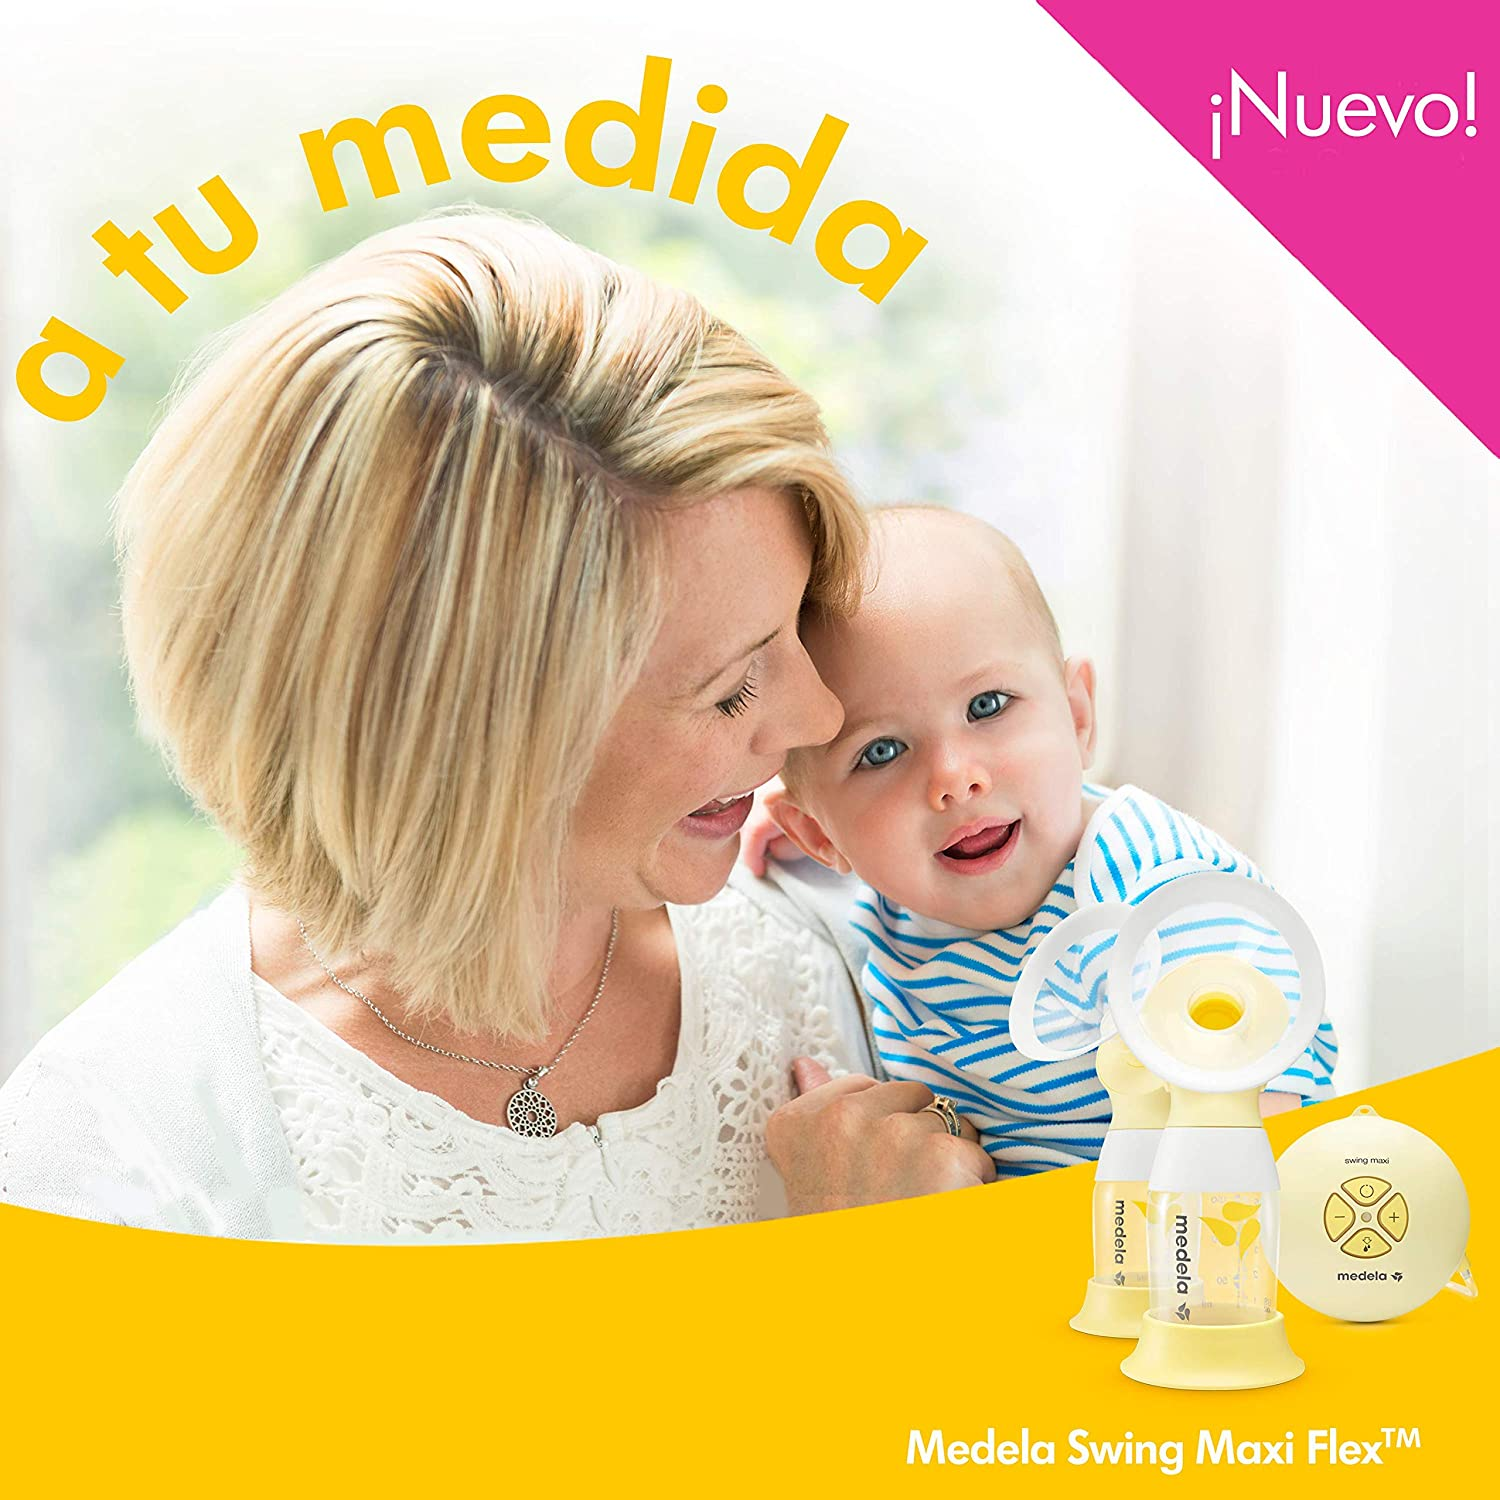 Medela Sacaleches electrico doble Swing Maxi Flex de Medela - Sacaleches eléctrico doble: Amazon.es: Bebé